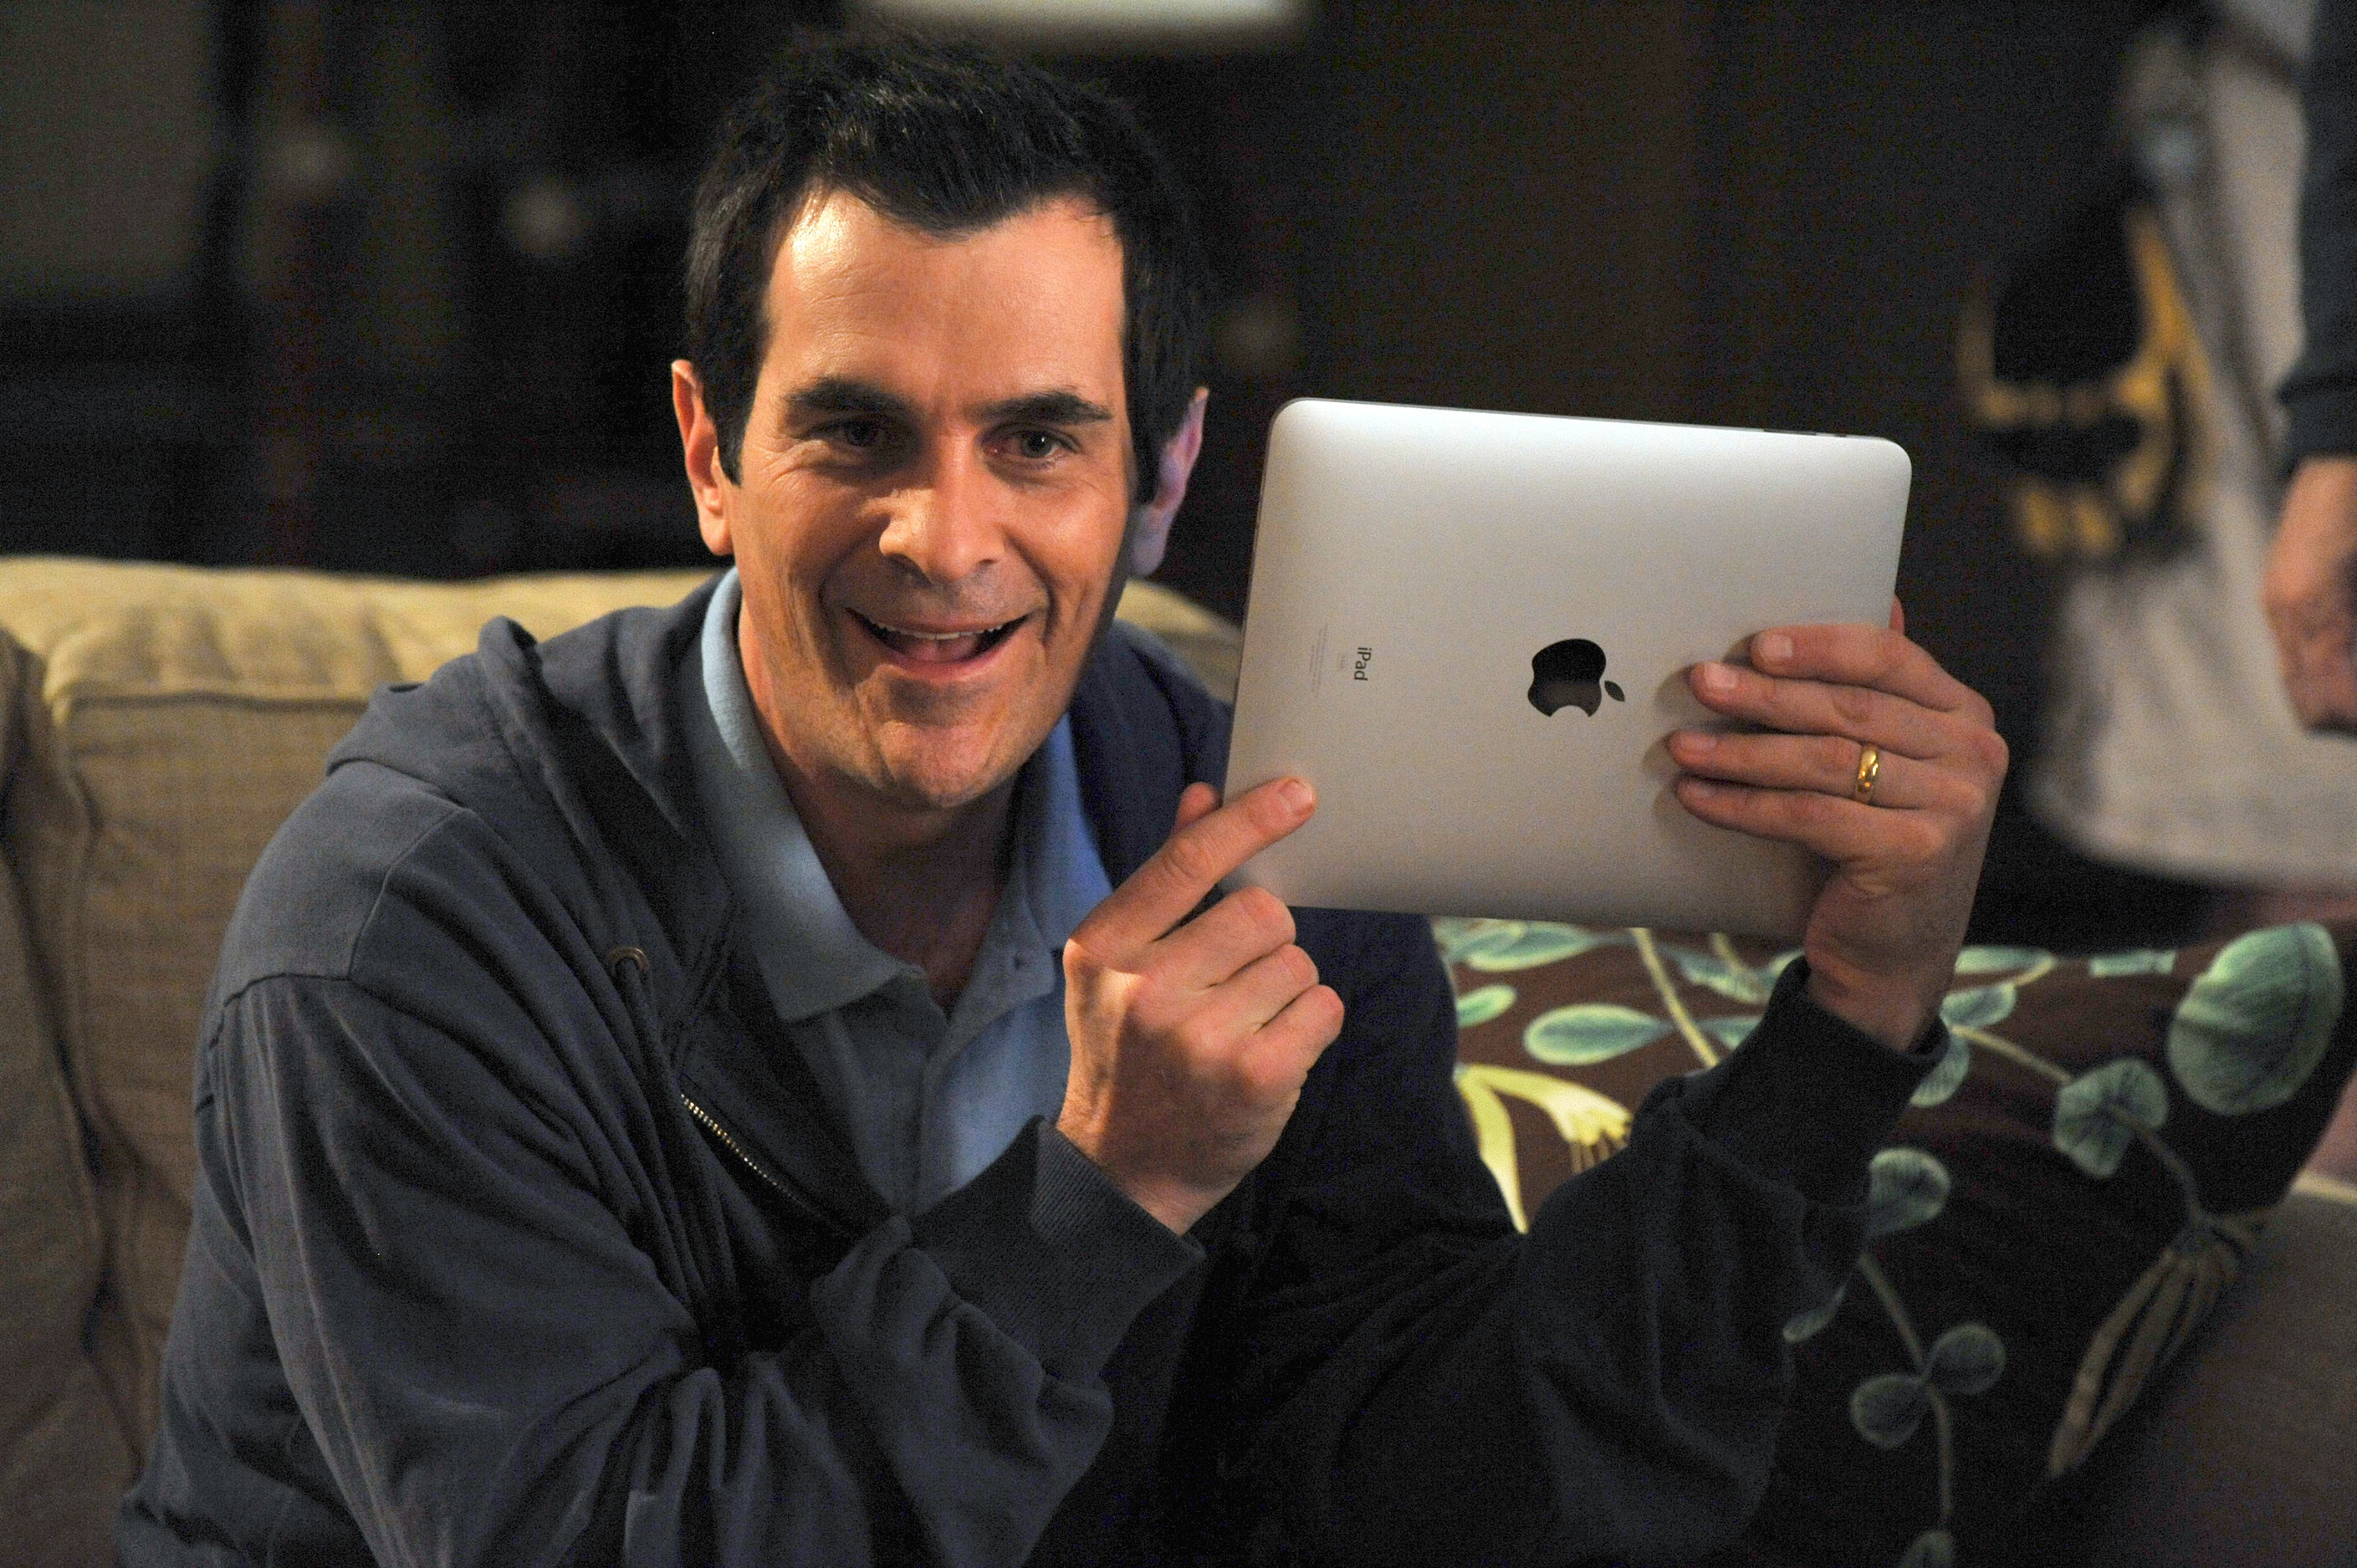 Ty Burrell holding an iPad with excitement